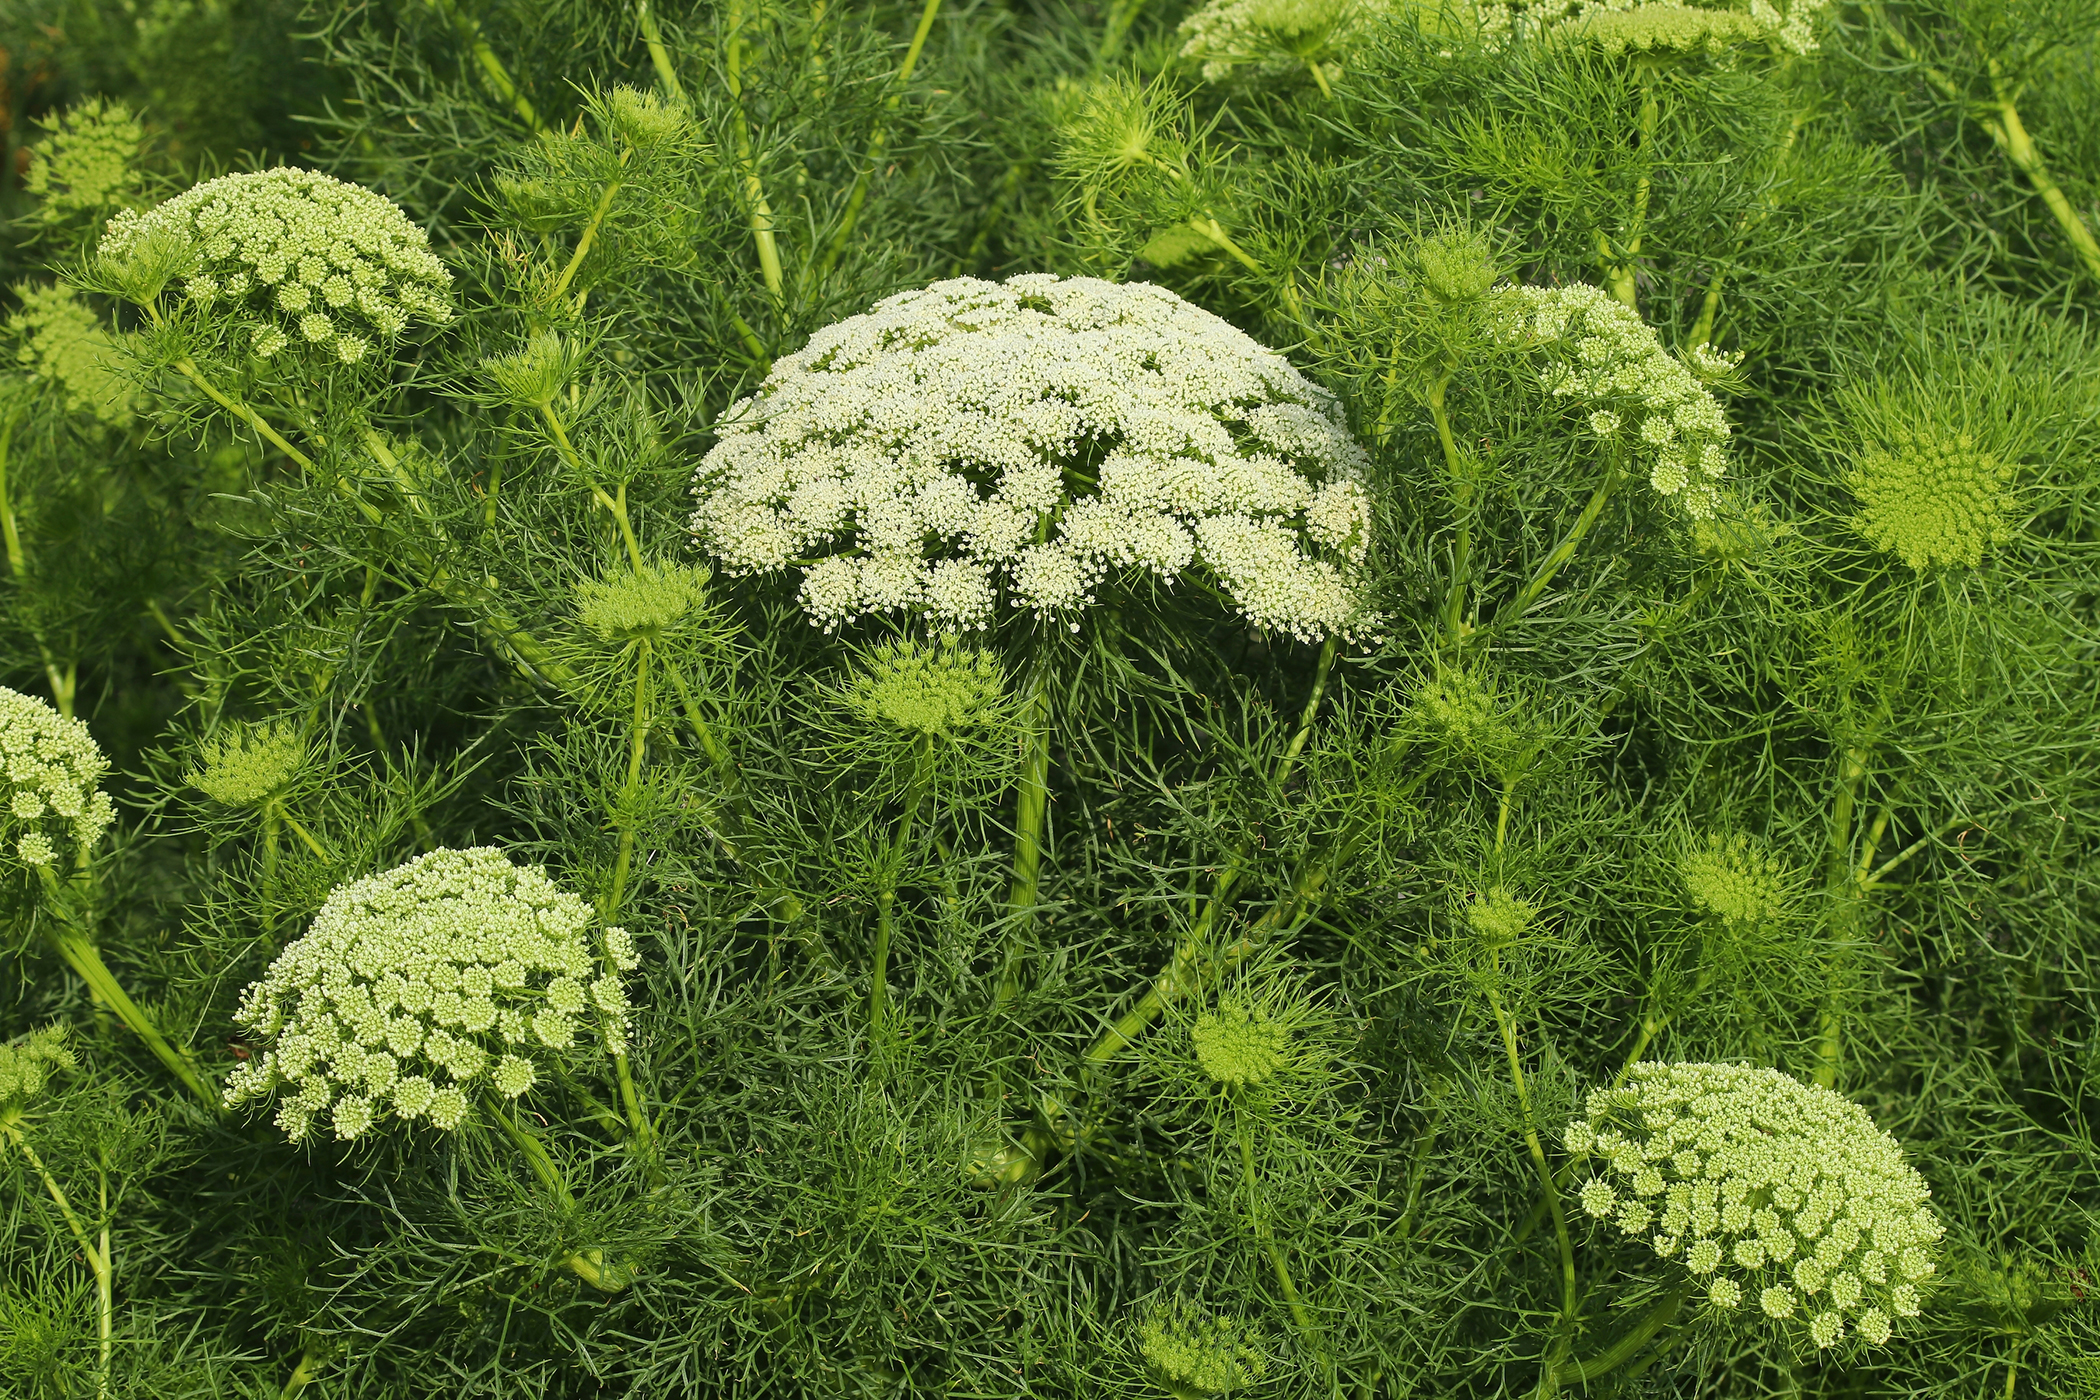 False Queen Anne's Lace Poisoning in Cats